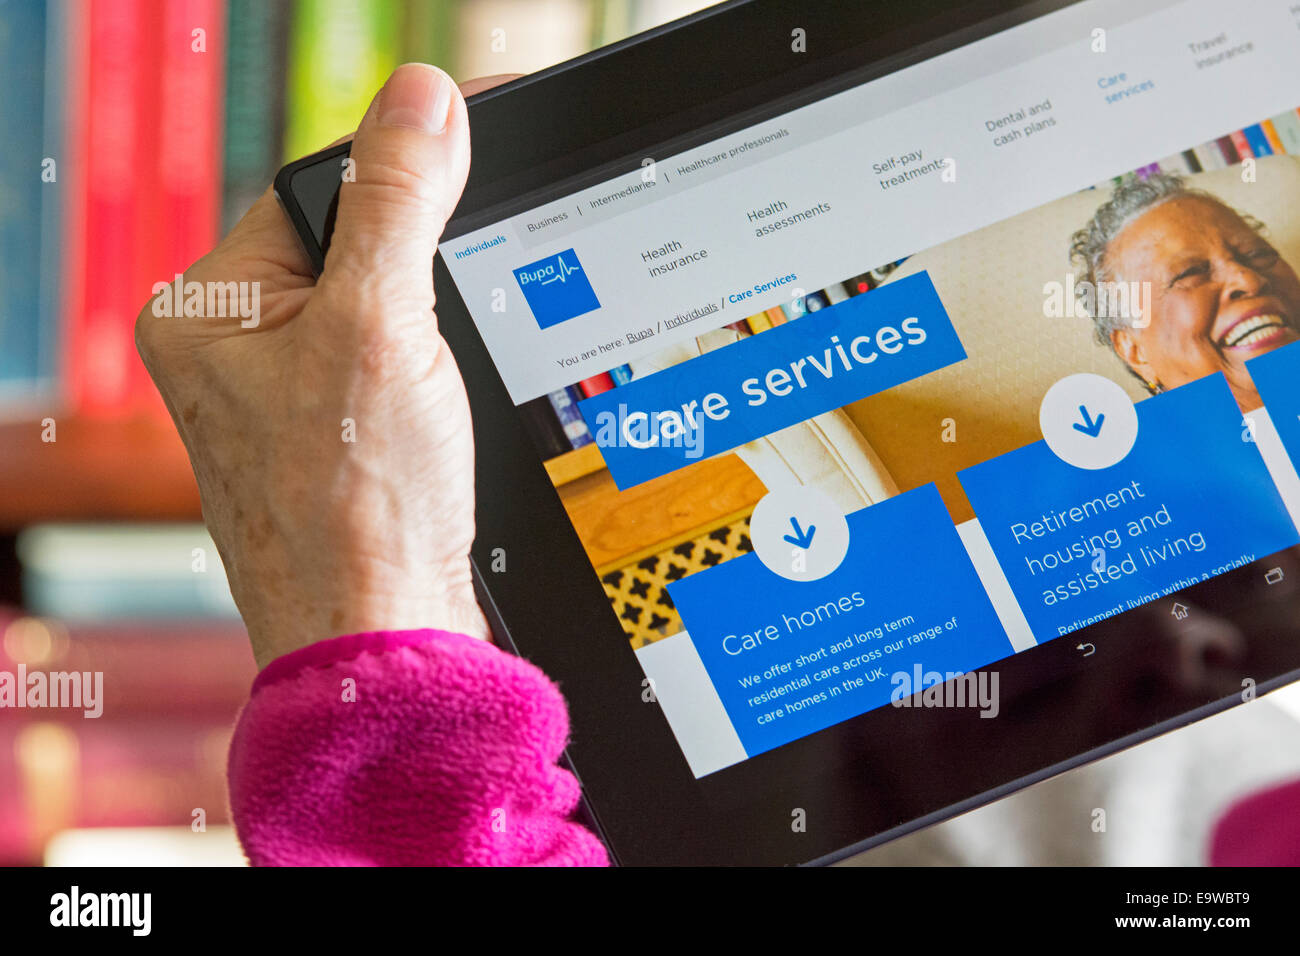 Care Home, Care Services screen on Bupa Website, Woman reading Browsing Web Site for Care Homes - Stock Image